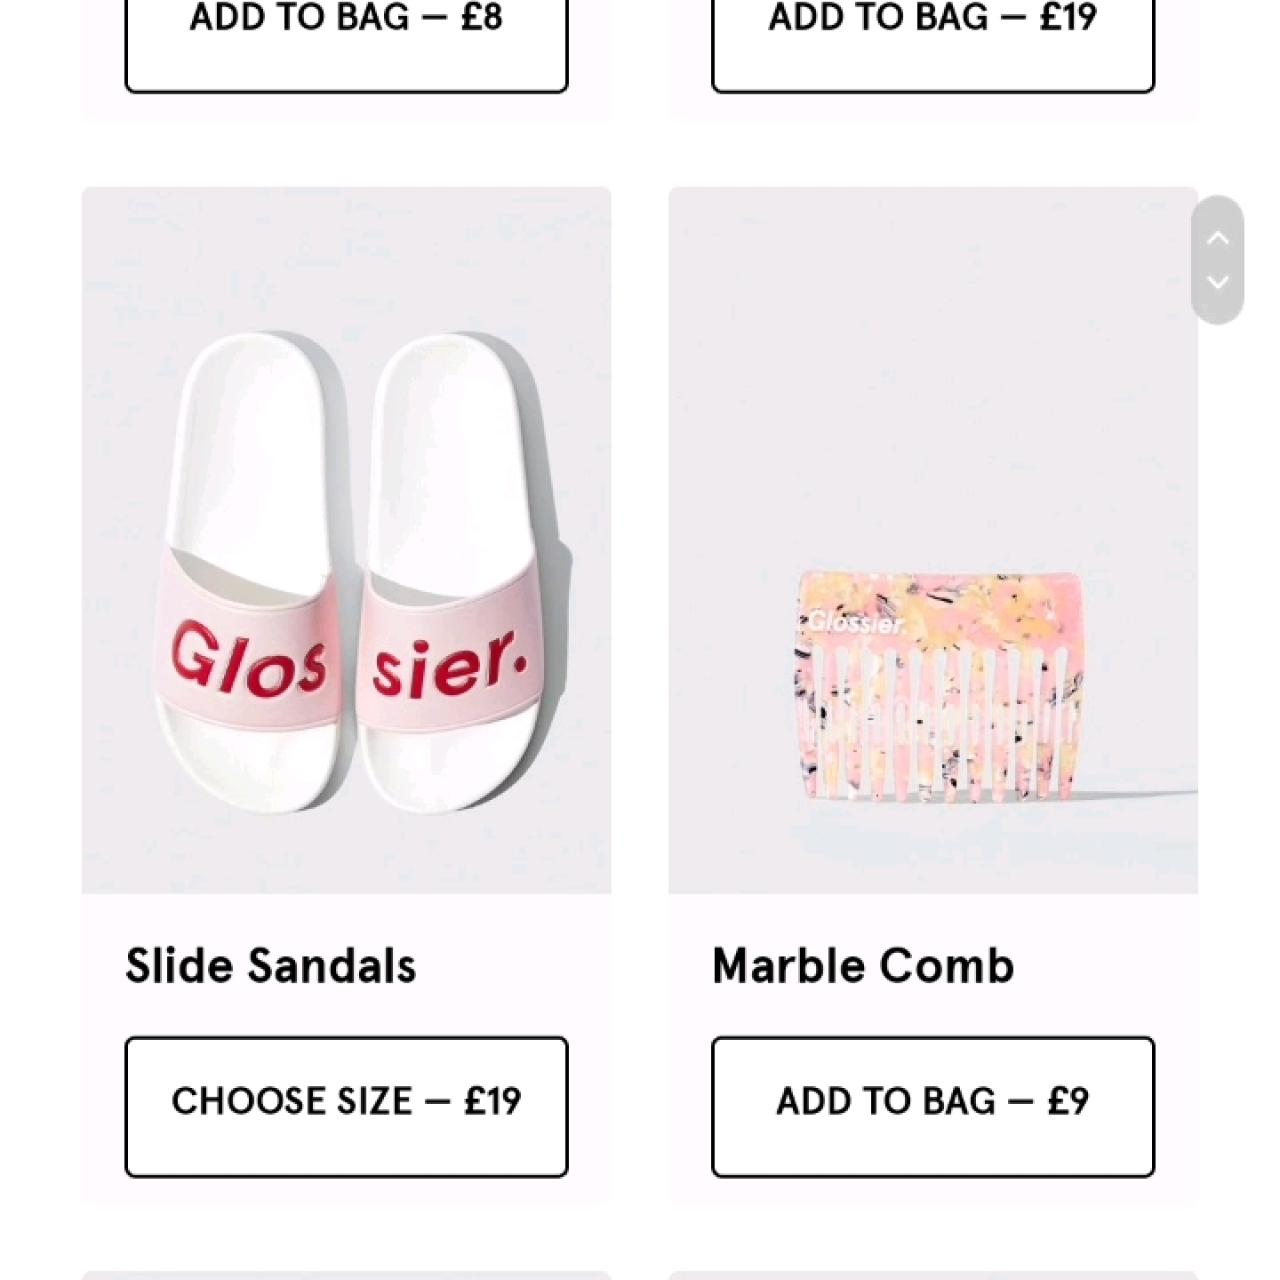 NEW GLOSSIER MERCH GLOSSIWEAR AVAILABLE